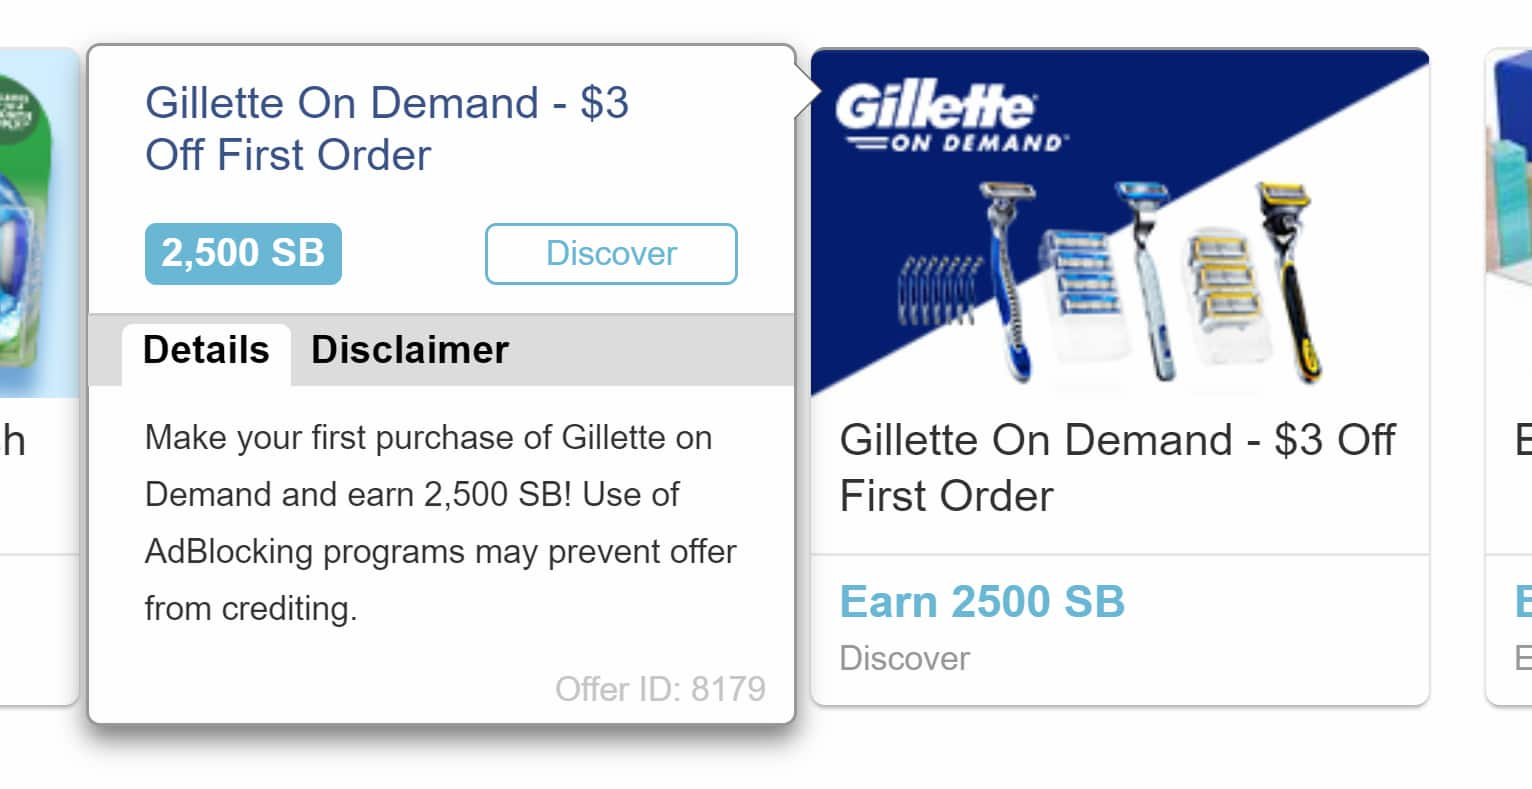 Swagbucks - First purchase at Gillette on Demand gives you $25 in points - $18 MM $7